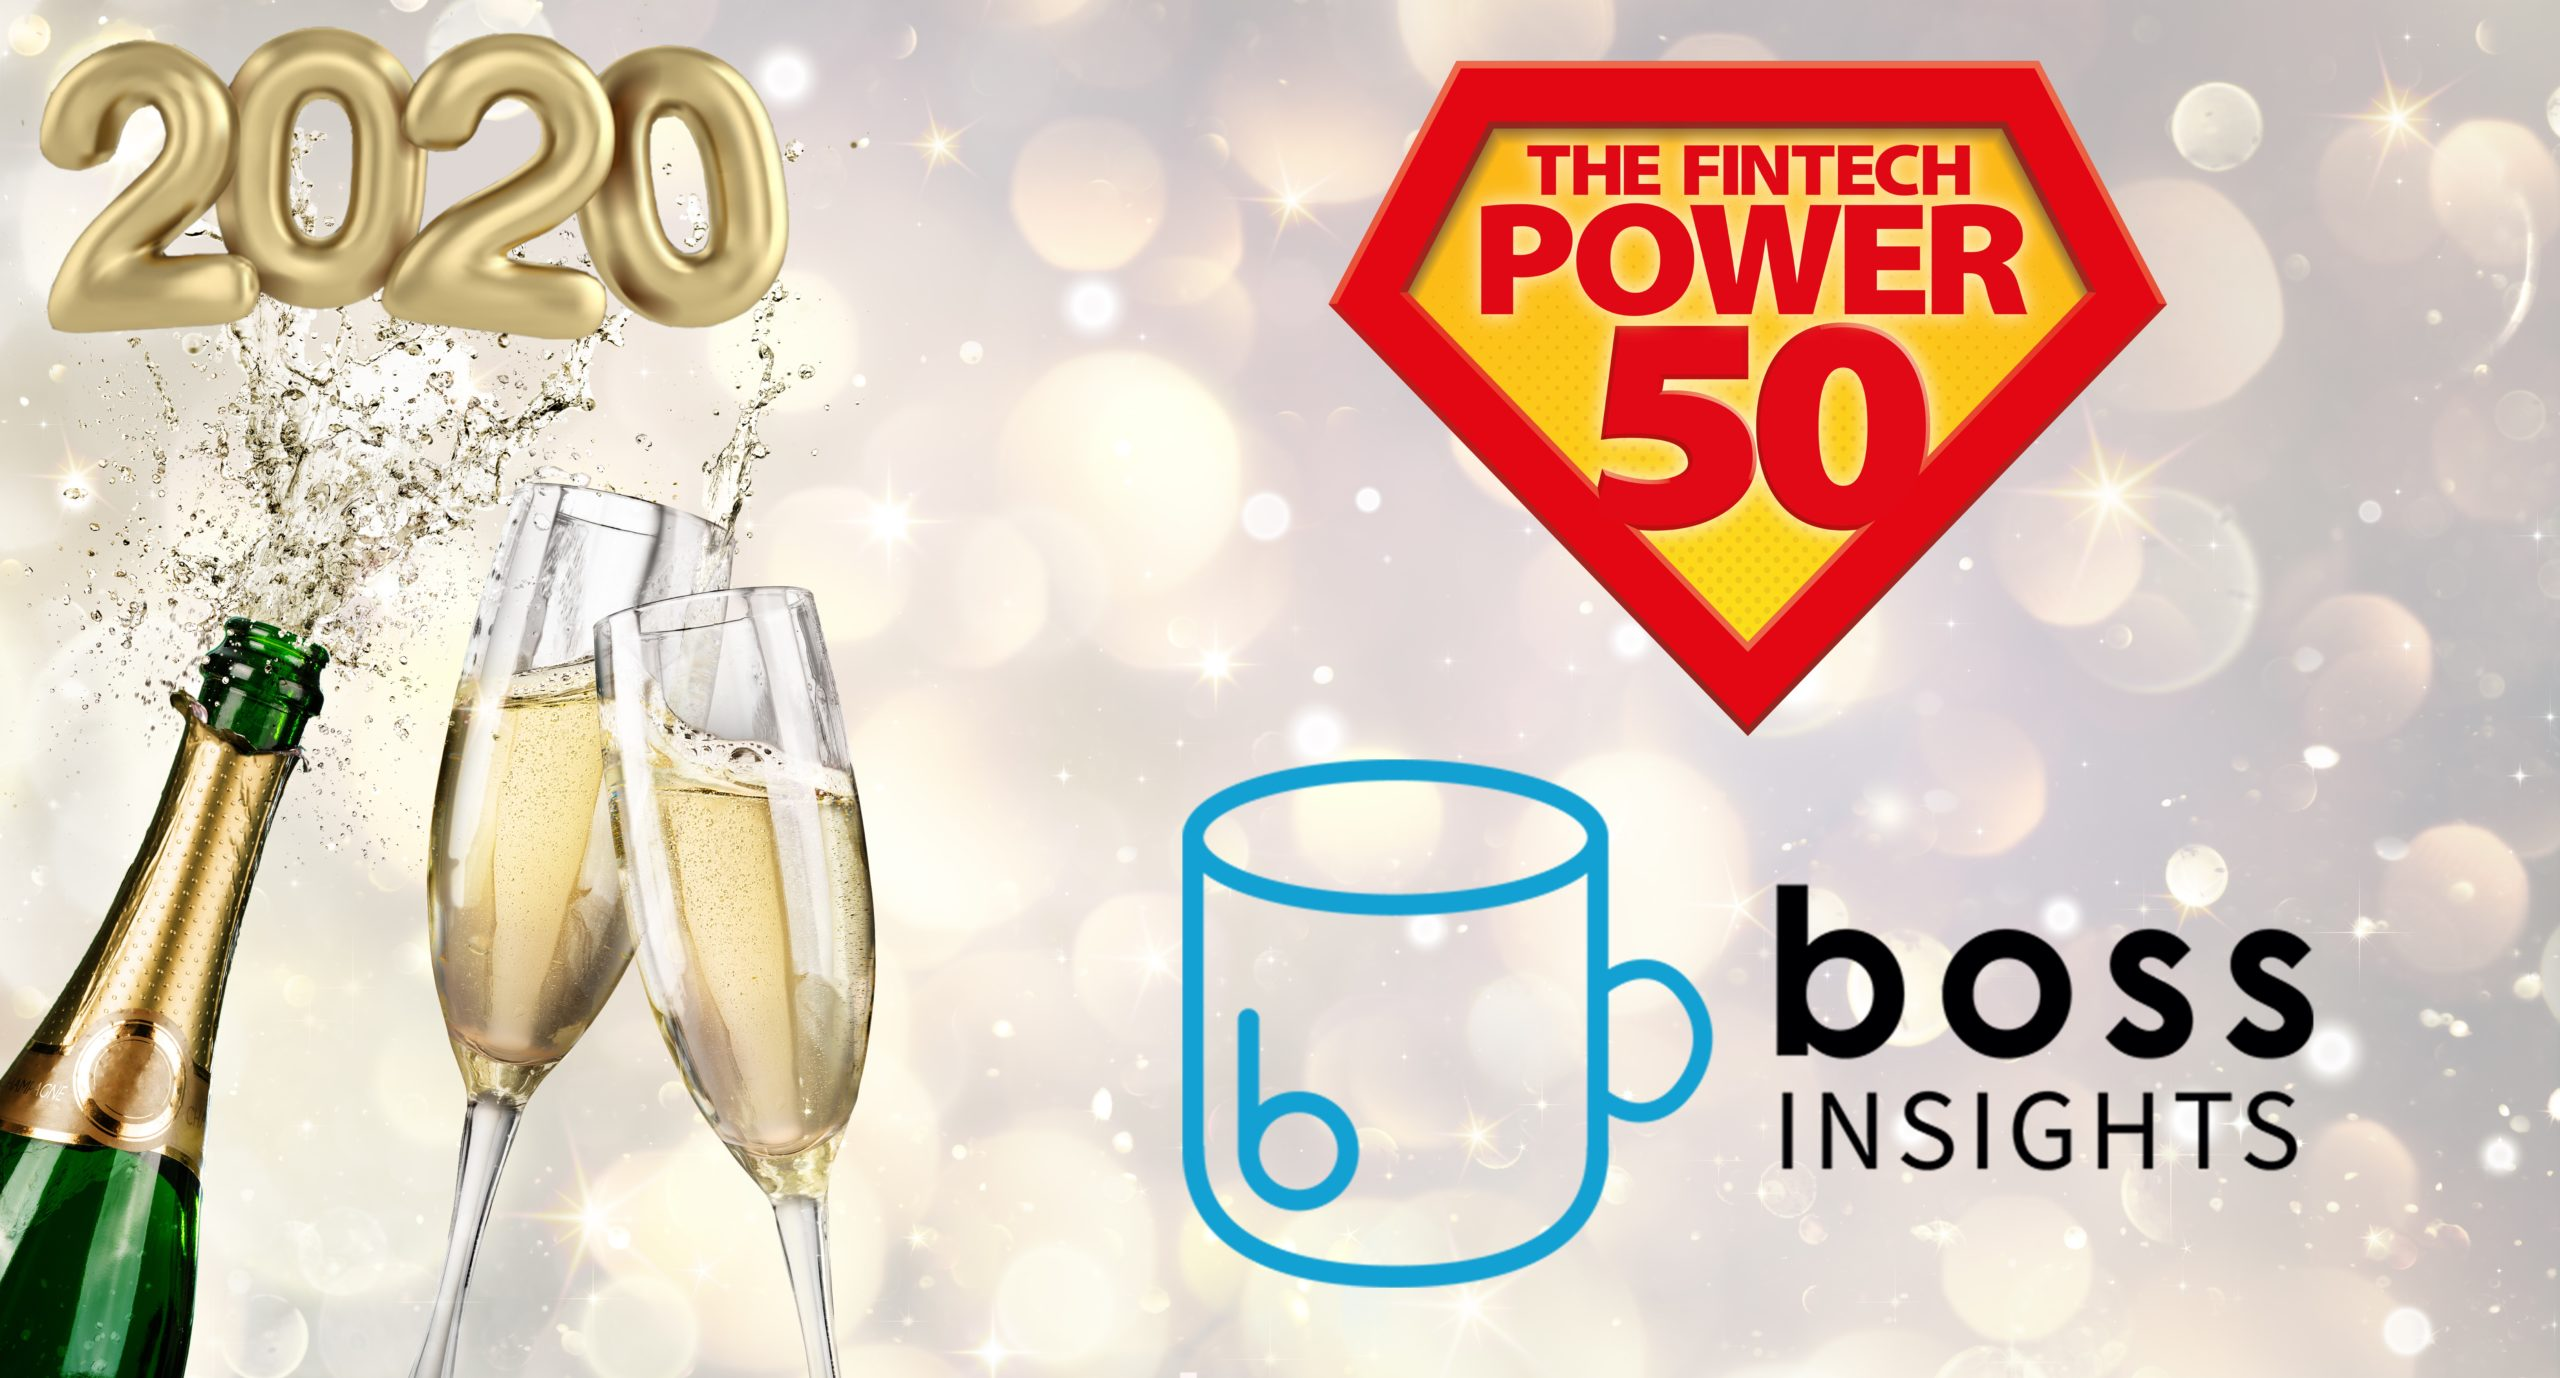 Boss Insights Featured on the Fintech Power 50 Annual Guide